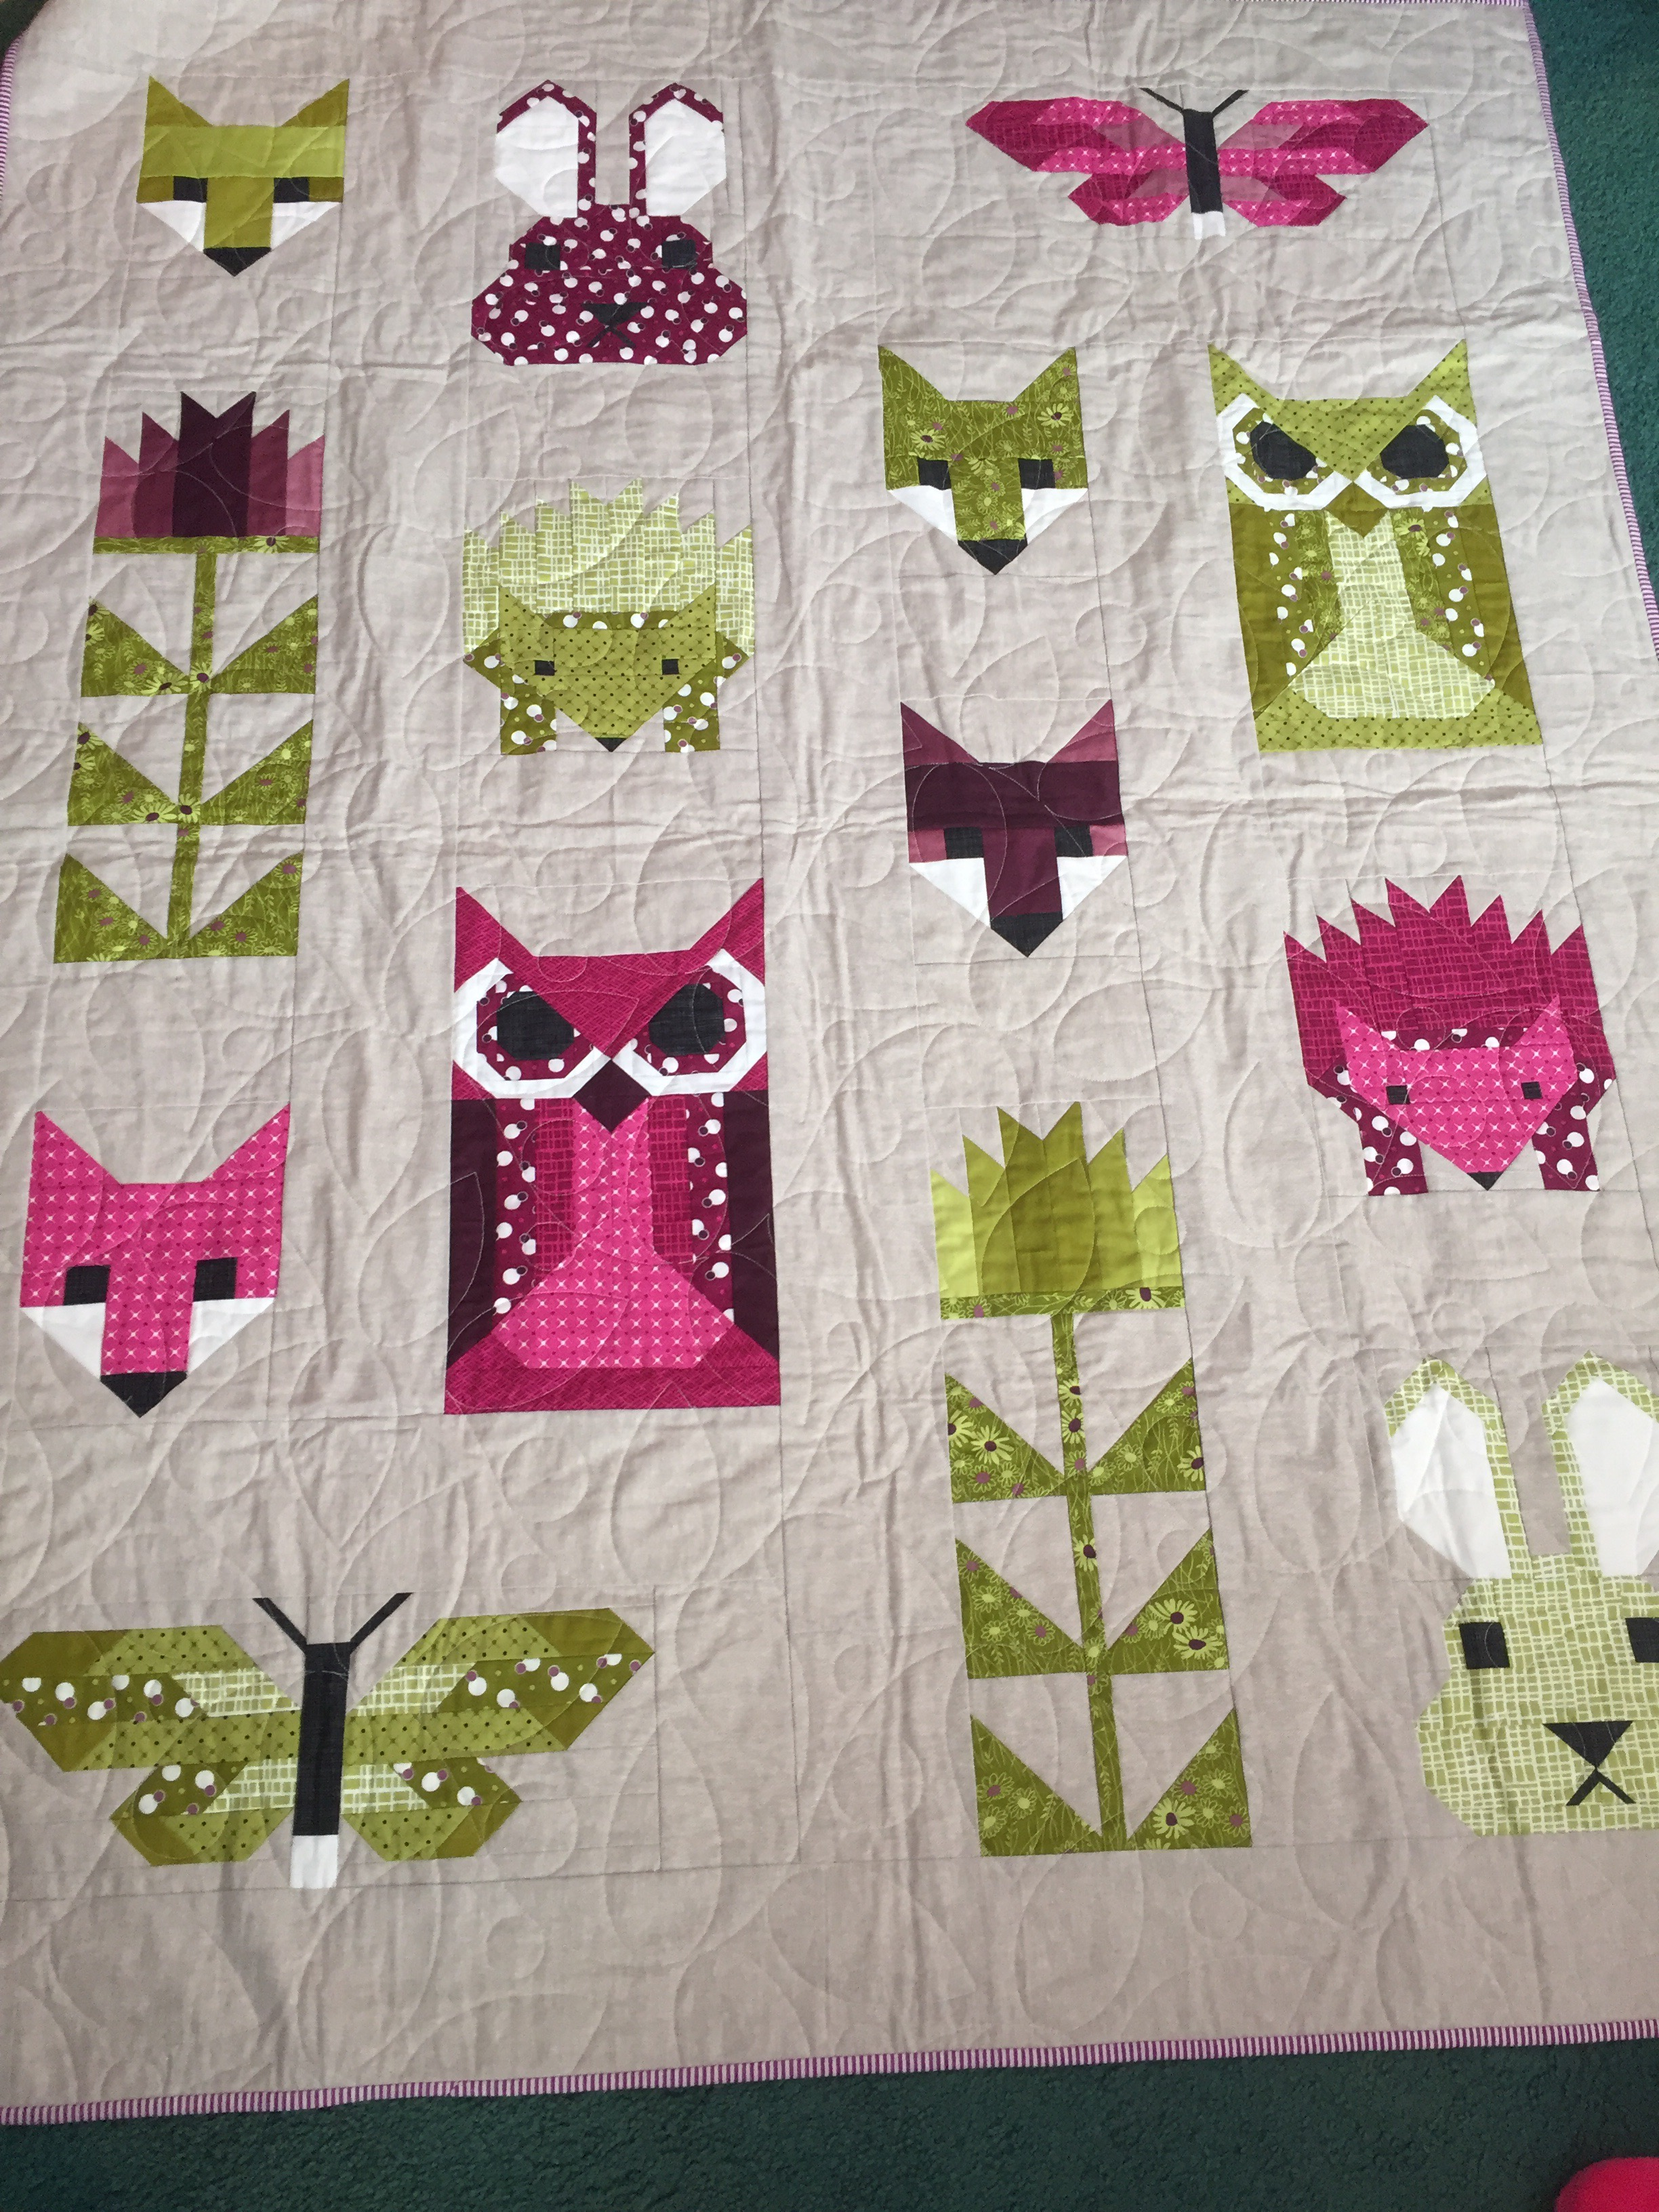 Fancy Forest Finished! – Kathryn Jones Quilts : quilts quilts quilts - Adamdwight.com